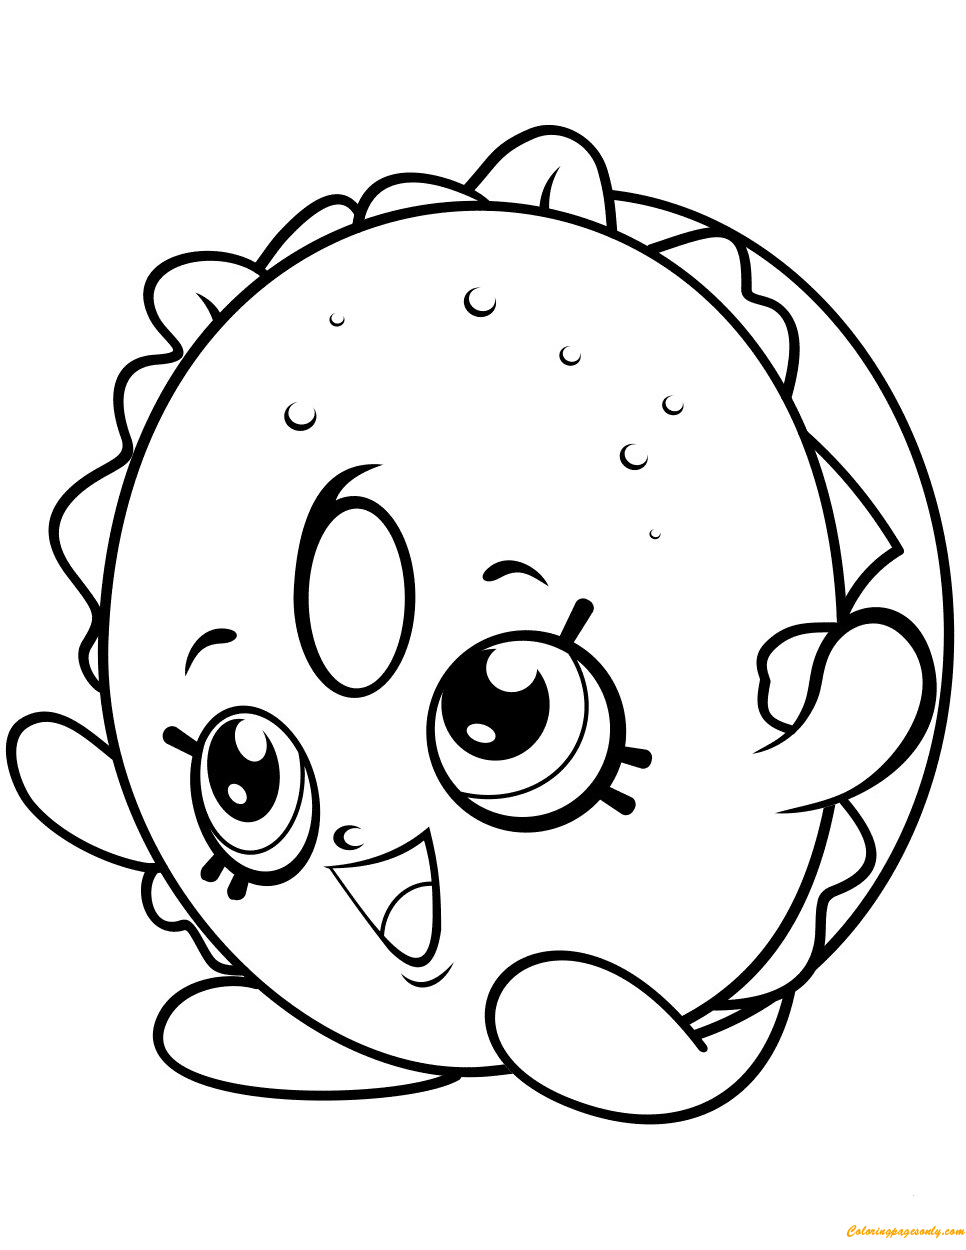 Bagel Billy Shopkin Season 4 Coloring Page Free Coloring Pages